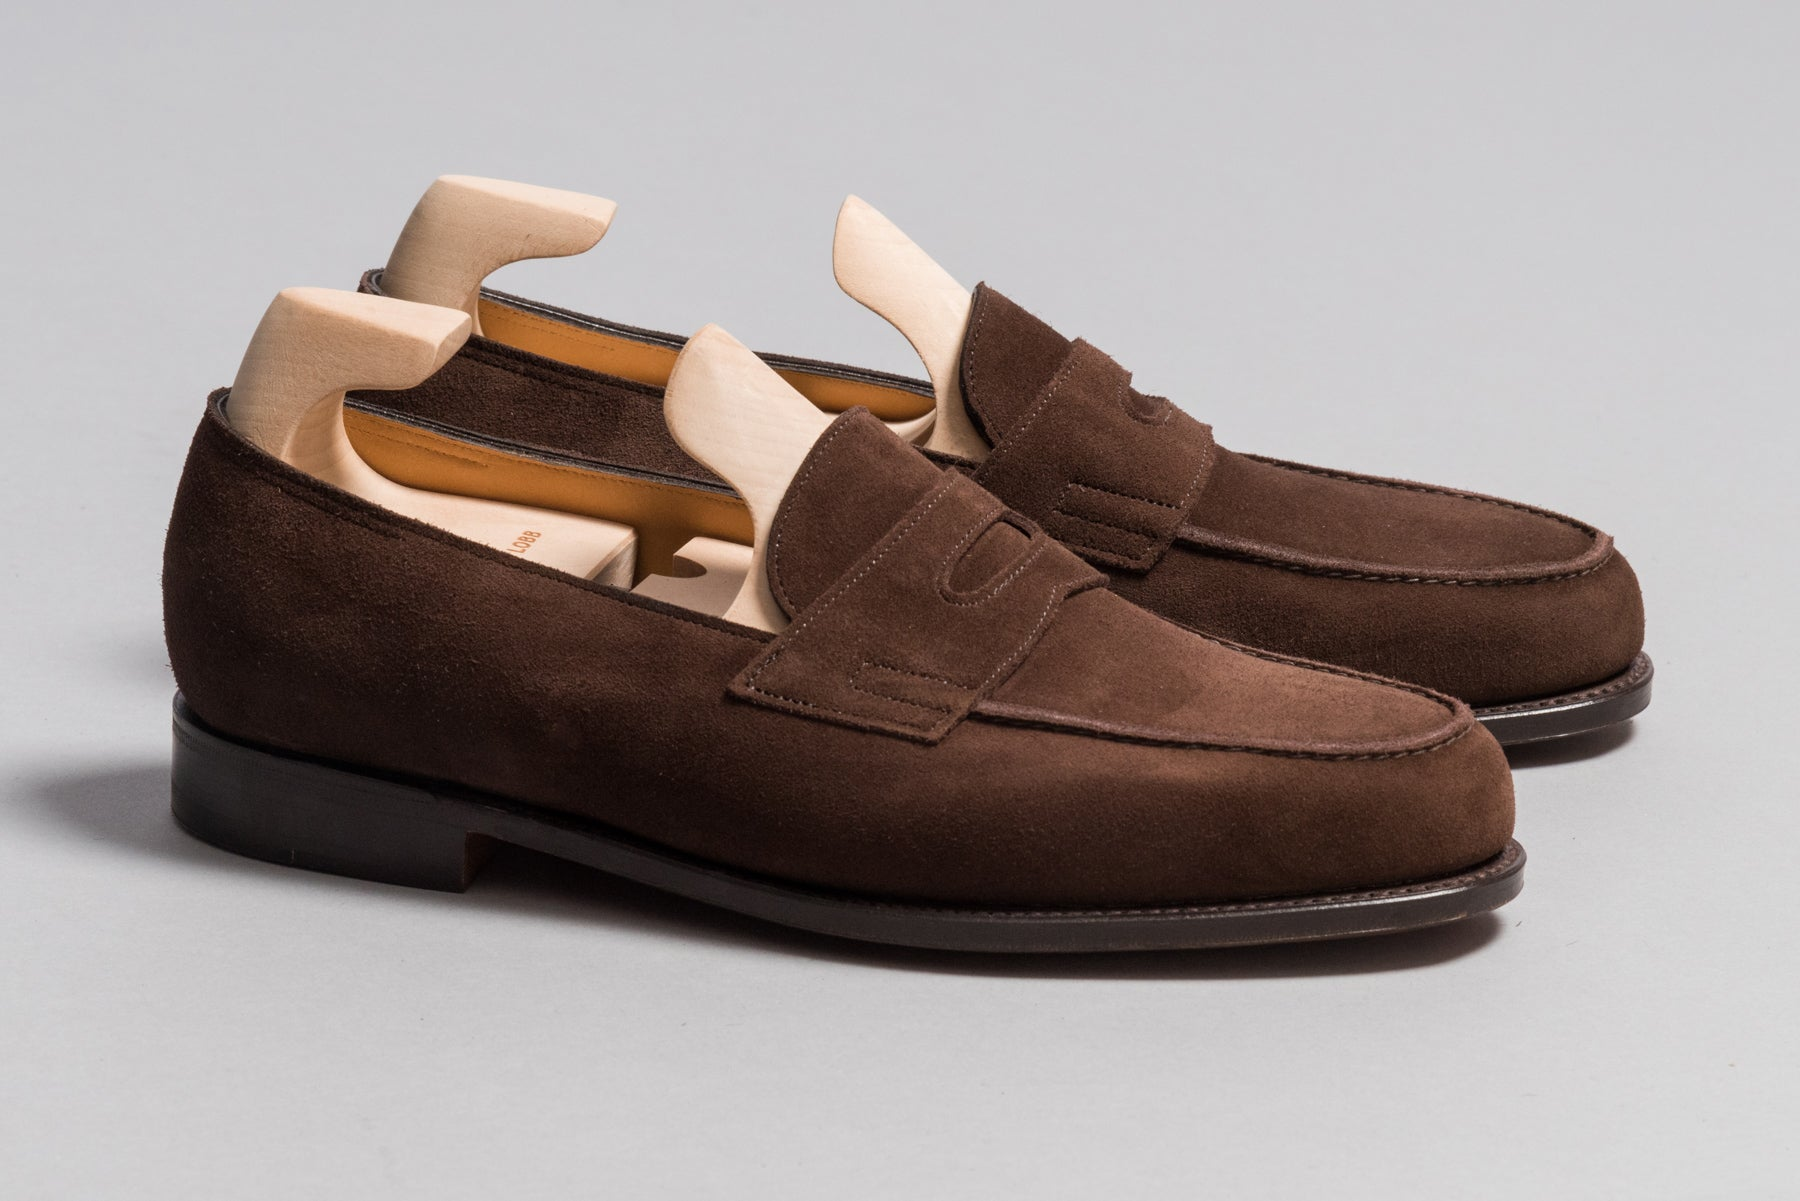 John Lobb Lopez Dark Brown Suede - Stock Service